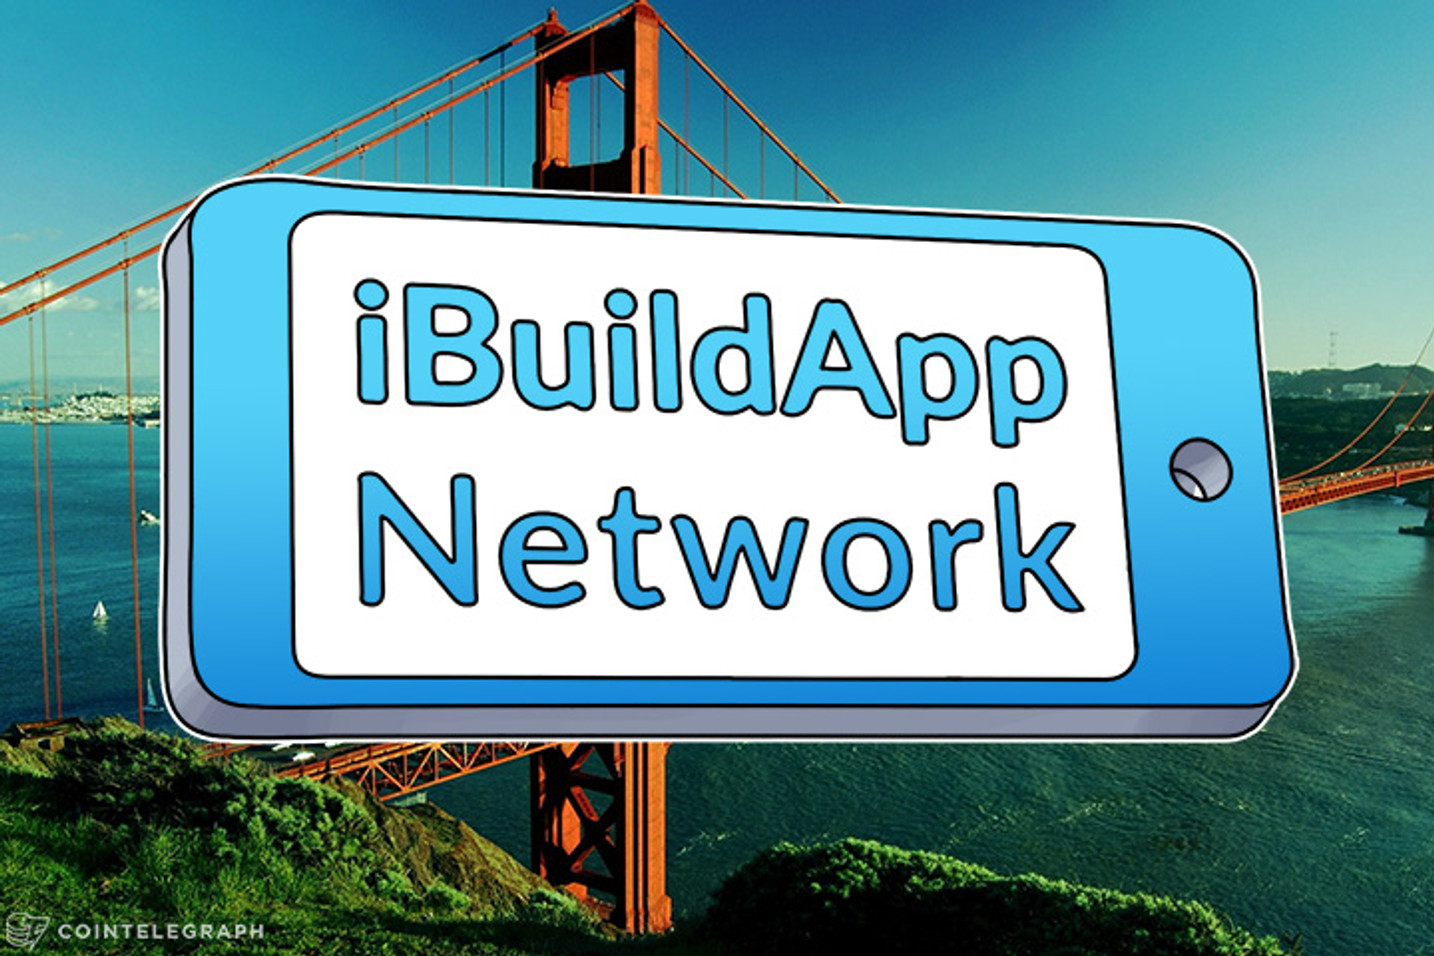 BuildApp Network Introduces a Decentralized Ethereum Blockchain-based Platform